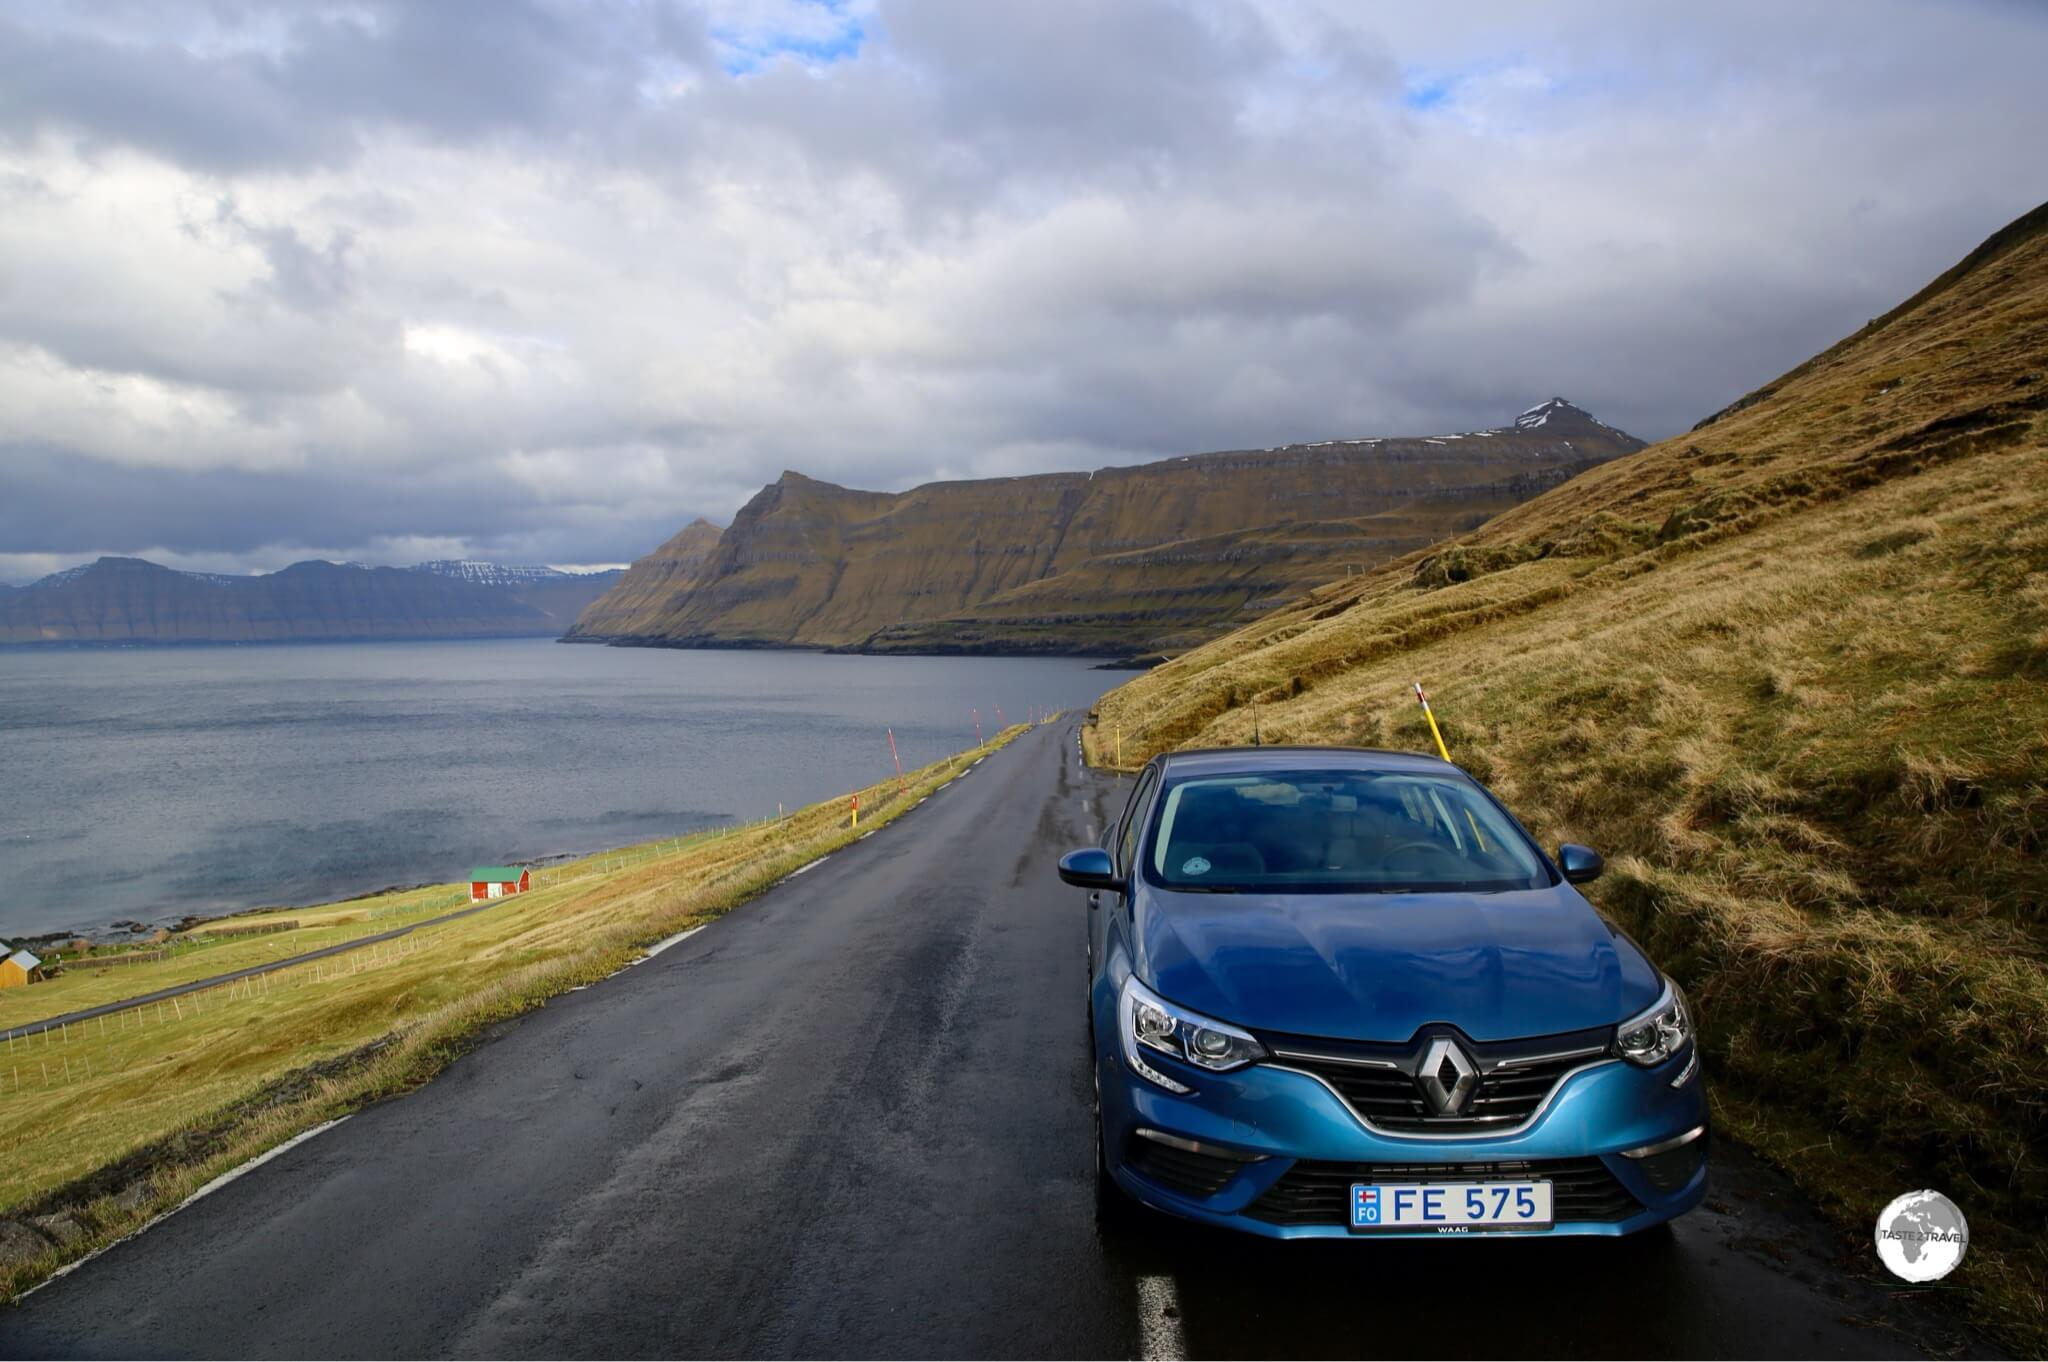 A rental car is the best way to explore the remote backroads of the Faroe Islands.